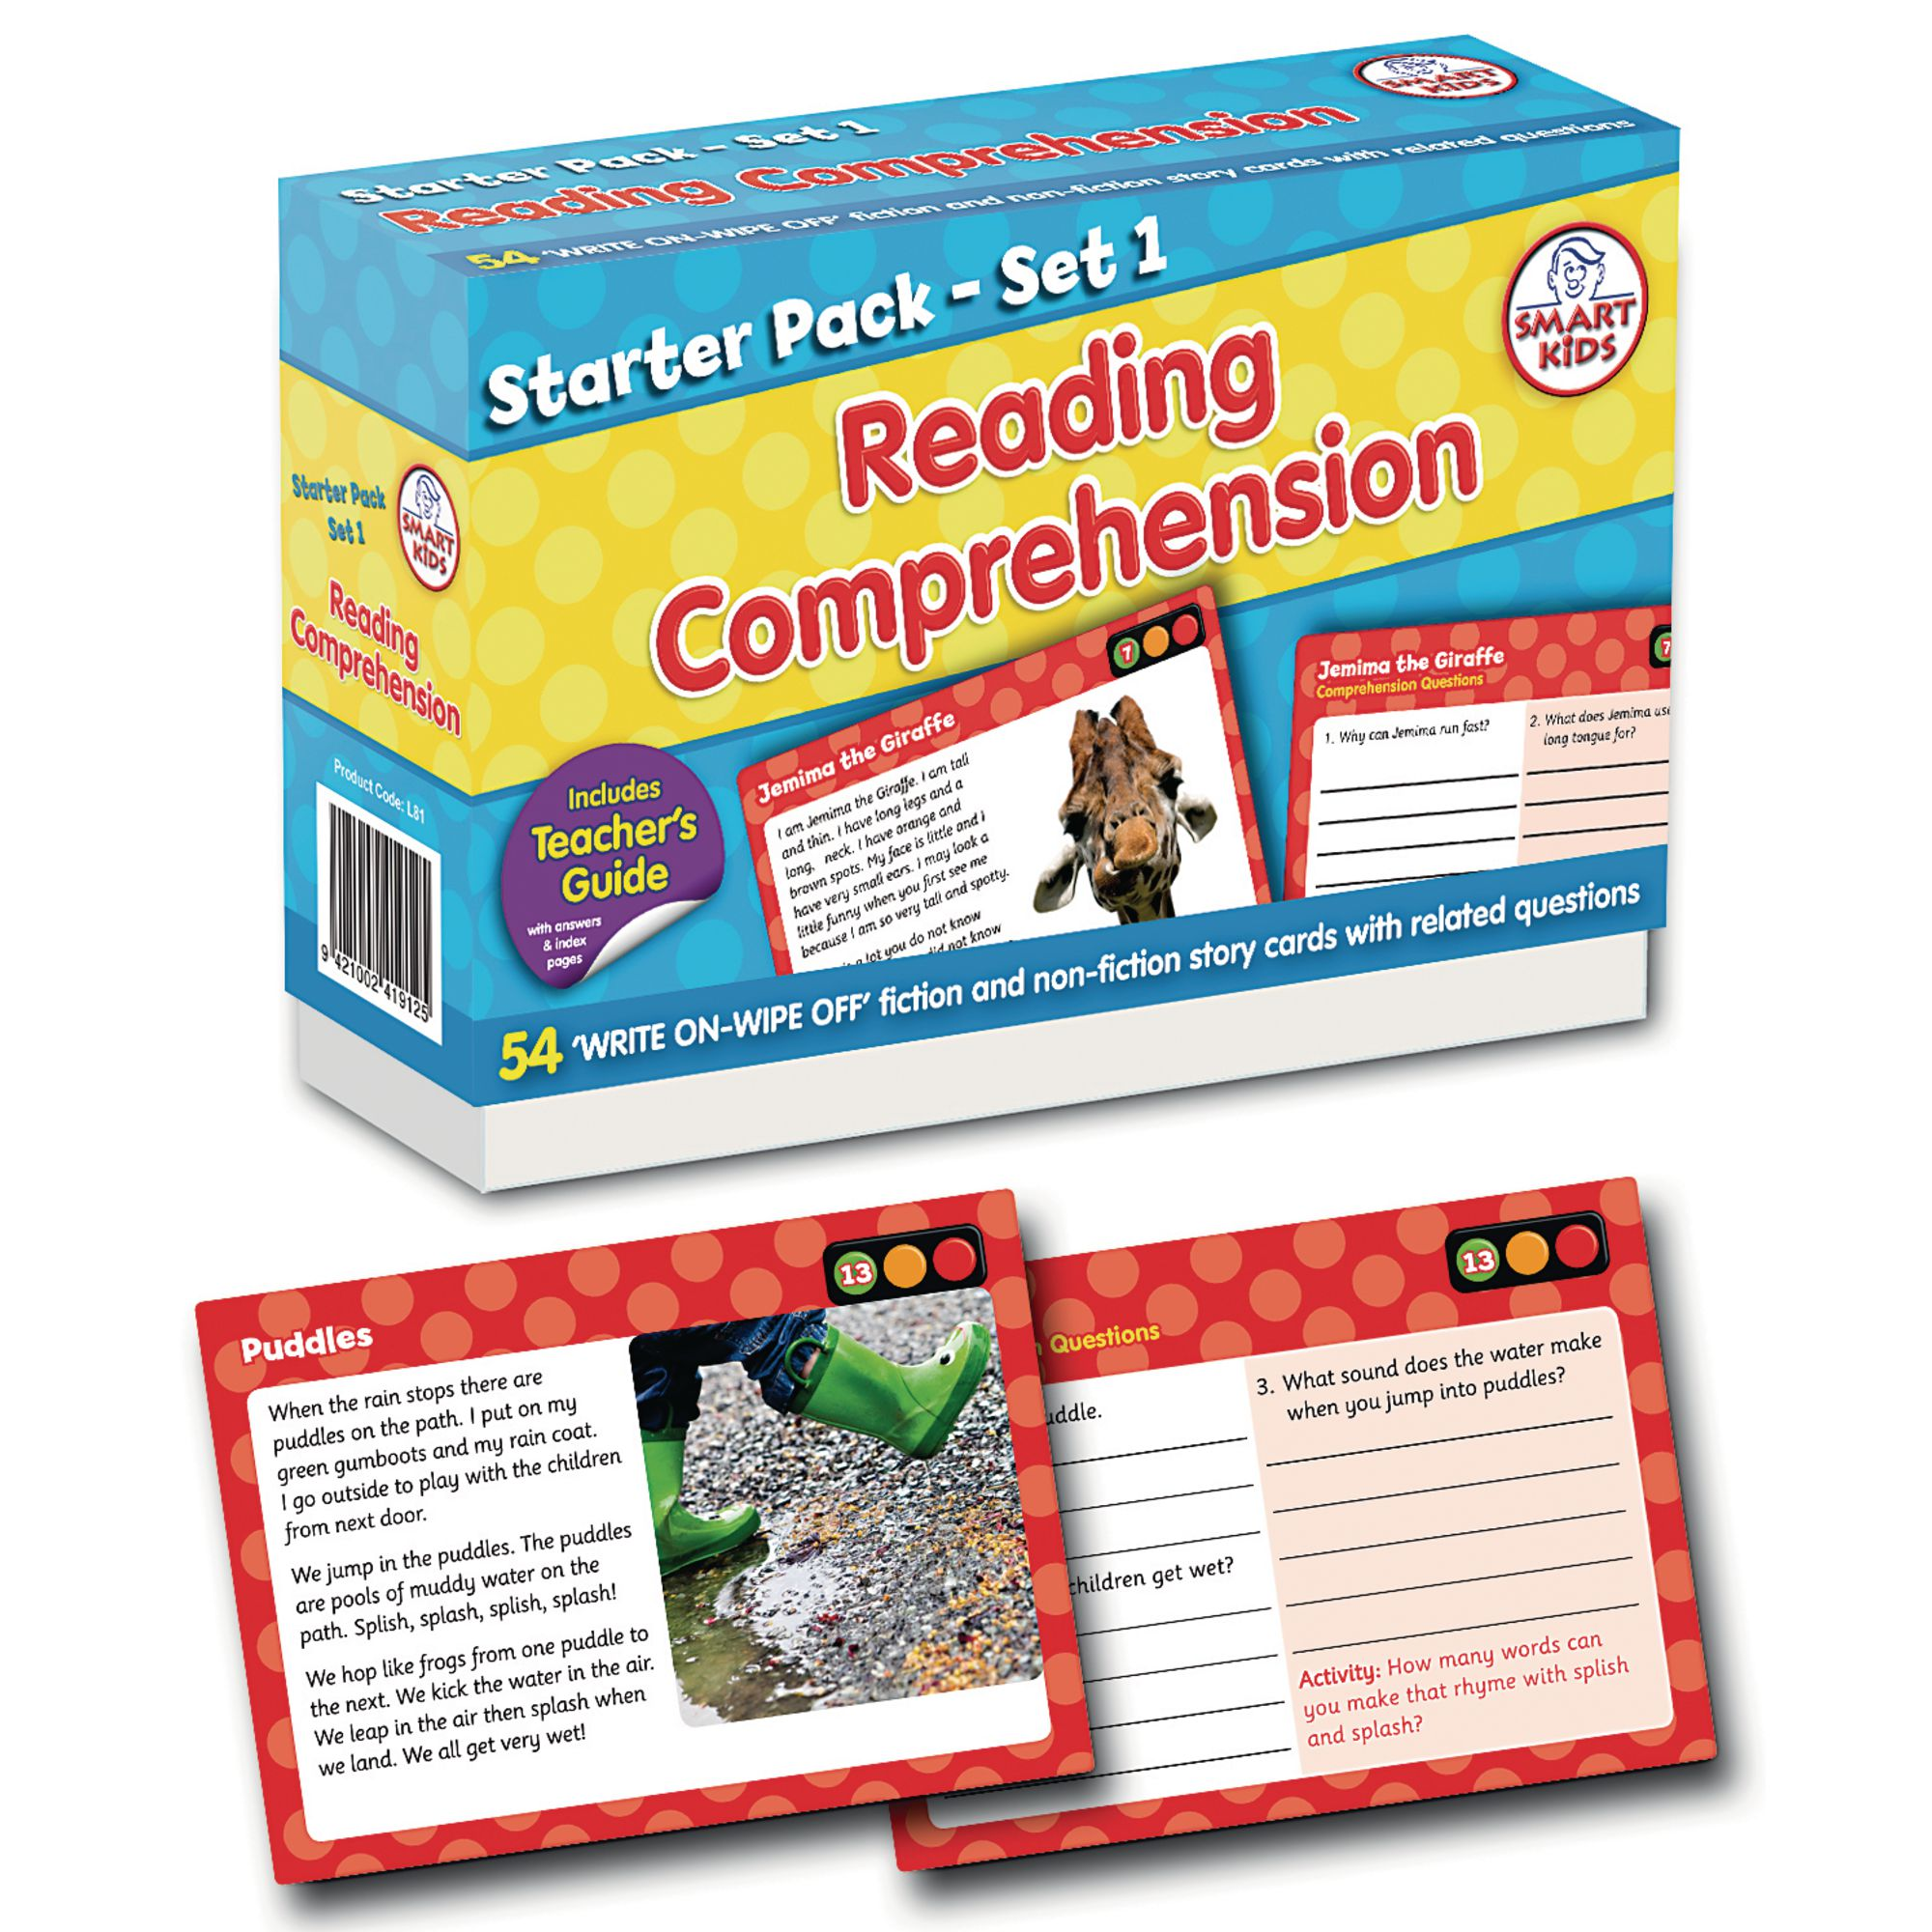 Reading Comprehension Starter Pack Set 1